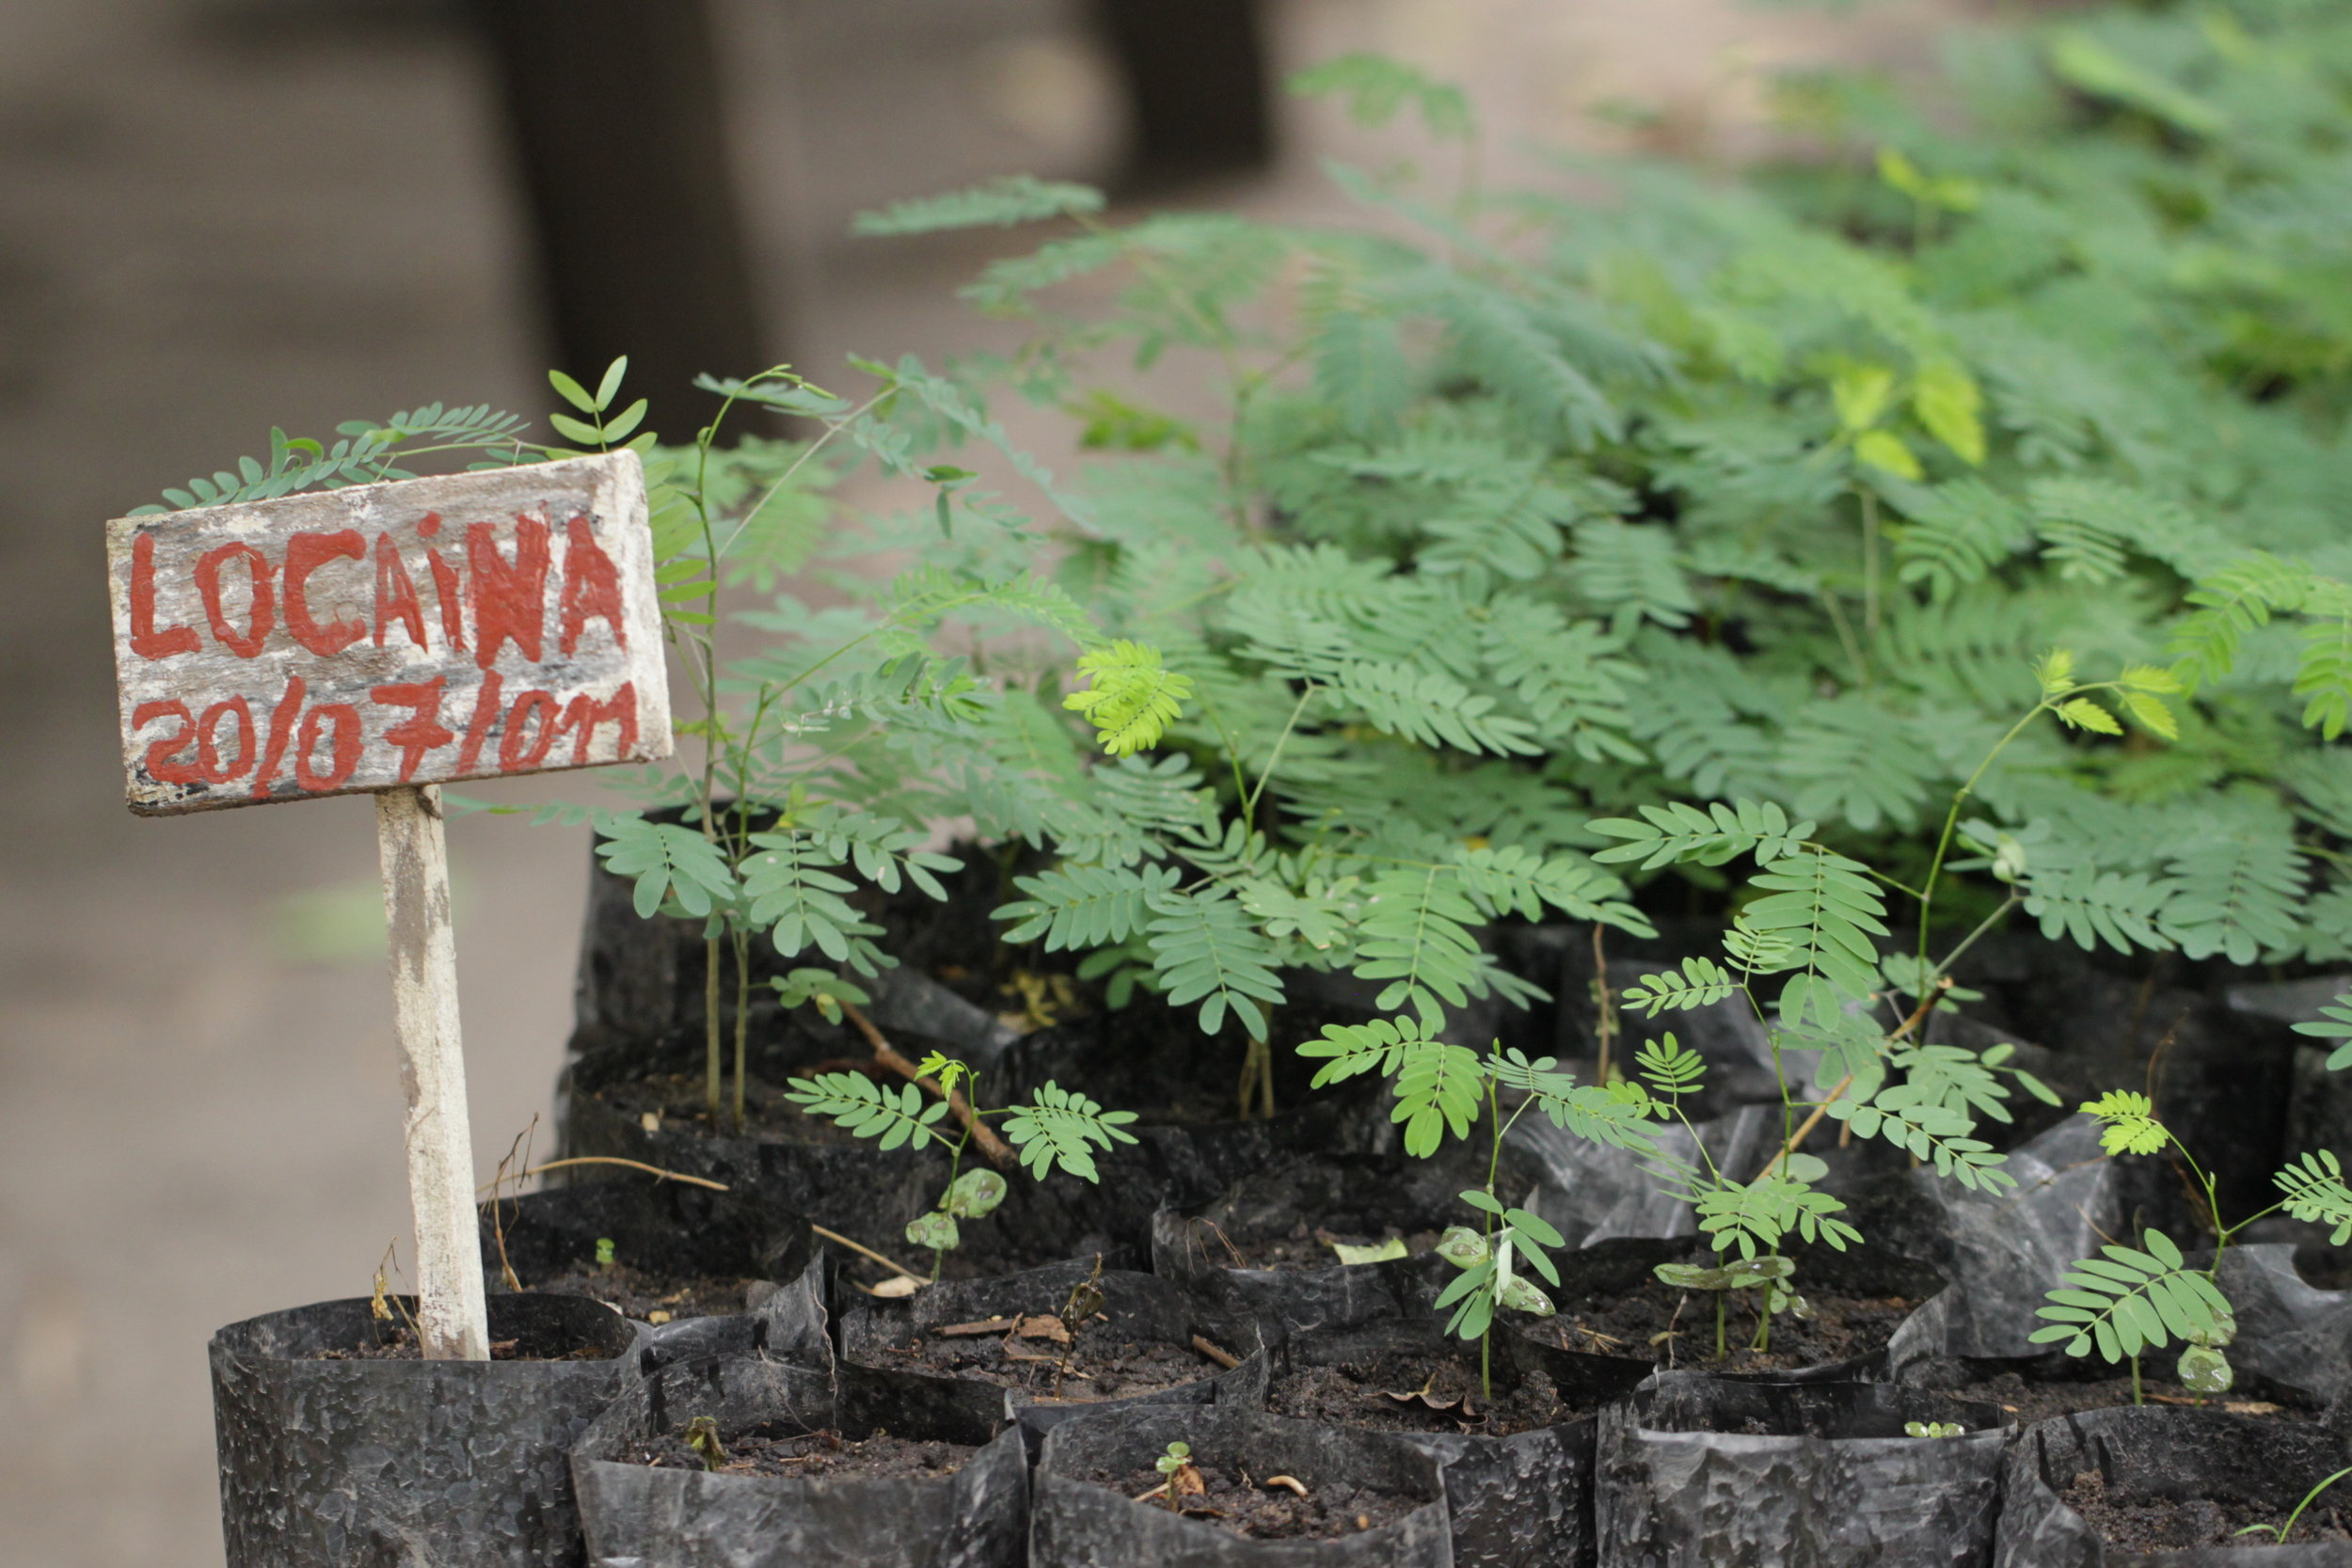 Locaina seedlings at the Mezimbite Forest Centre, prior to Hurricane Idai.